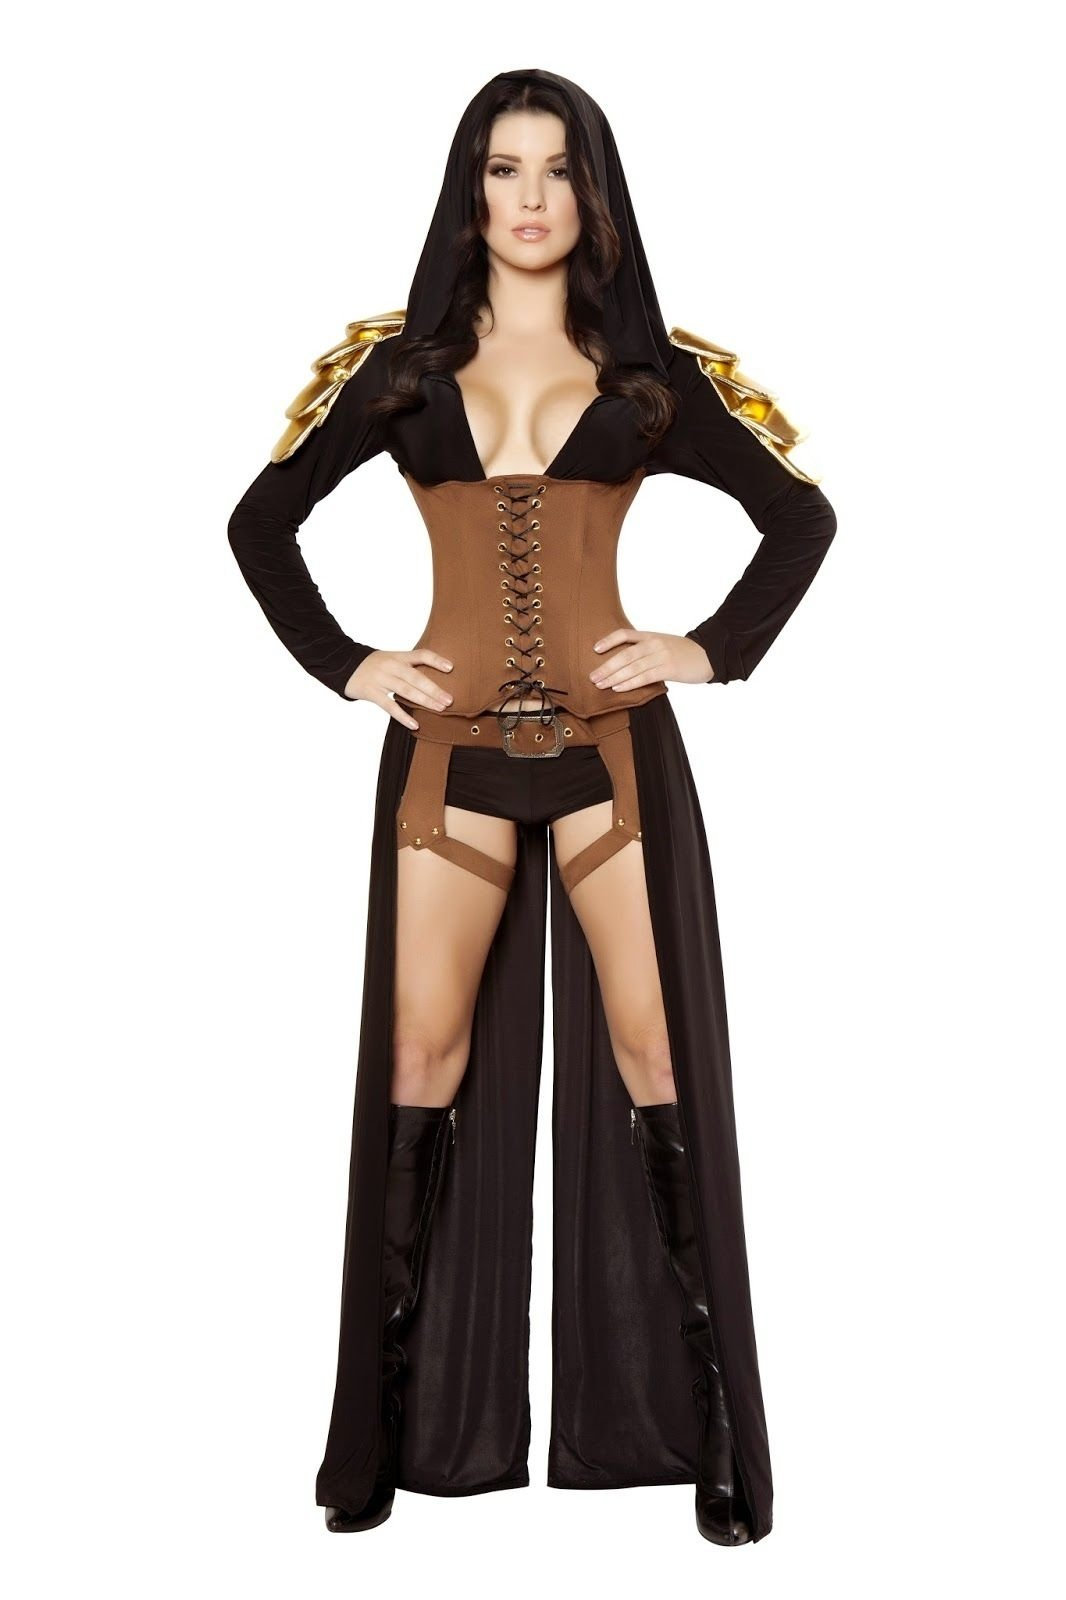 10 Stylish Ideas For Halloween Costumes For Women sexy homemade halloween costumes for women halloween costume ideas 3 2021